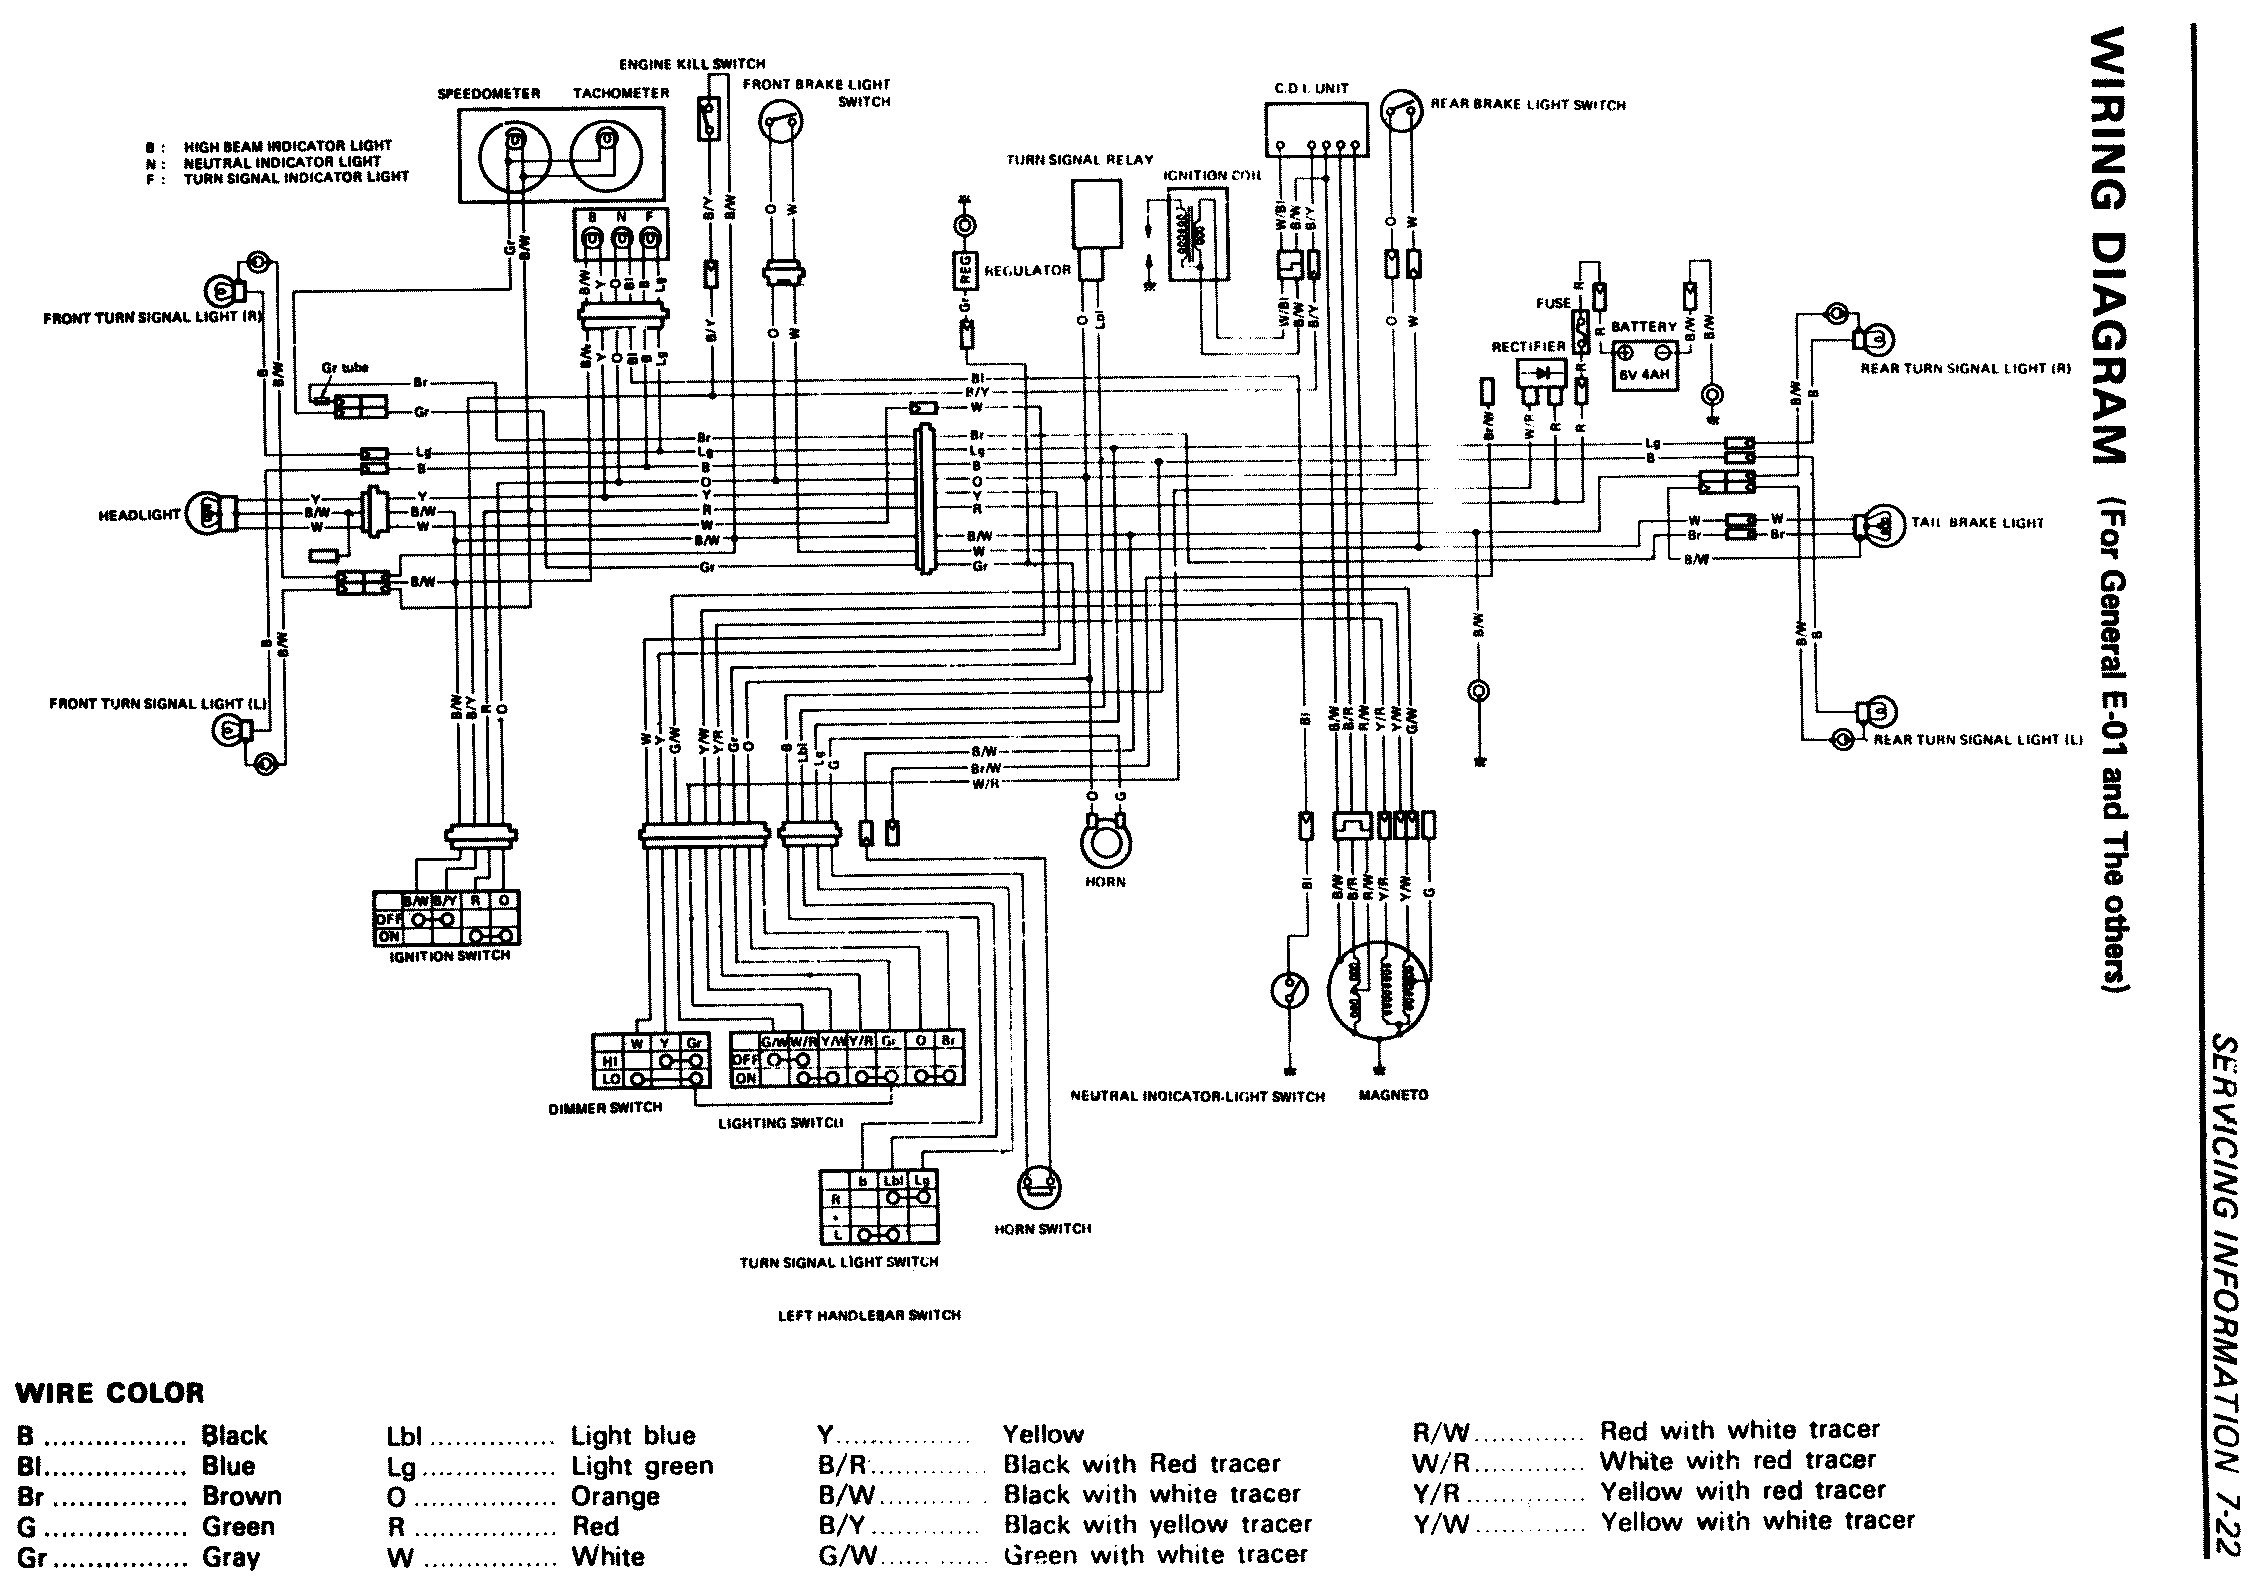 [DIAGRAM] Suzuki Ts 400 Wiring Diagram FULL Version HD